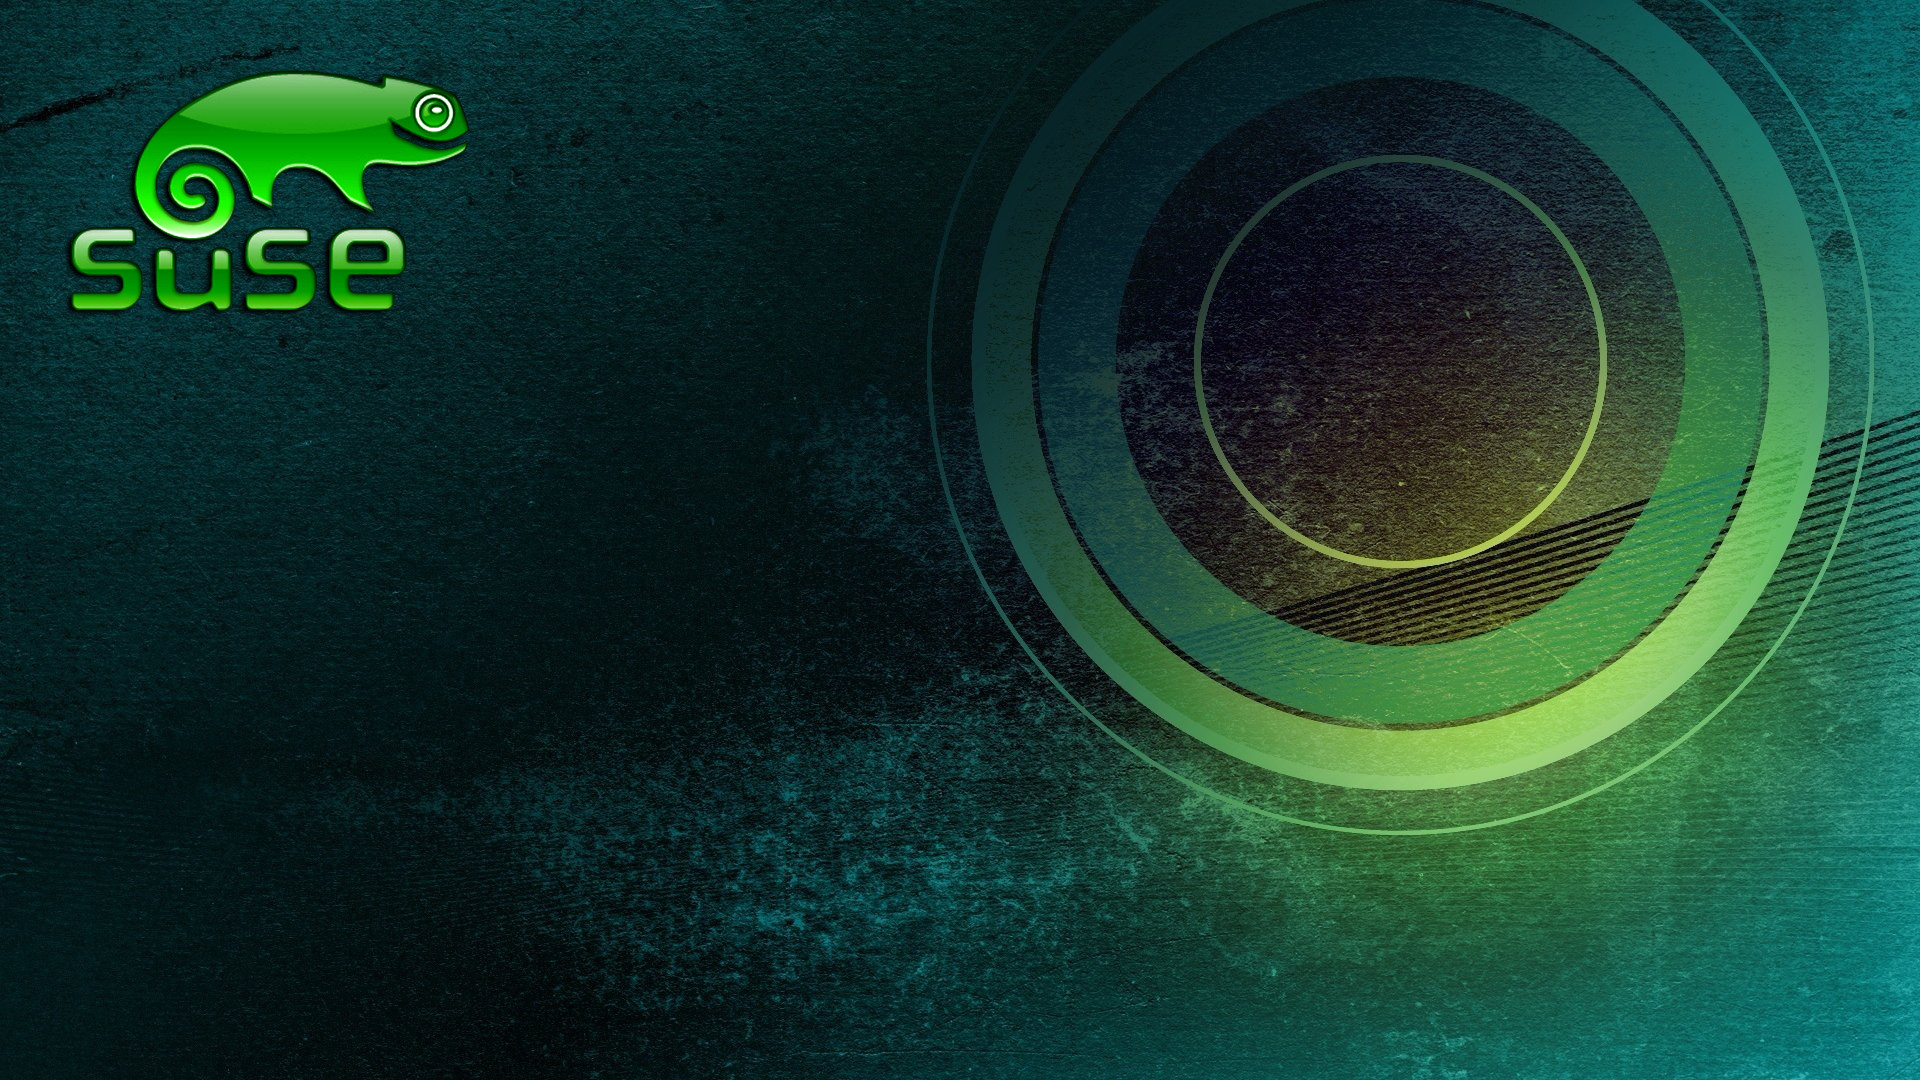 Opensuse Wallpapers (73+ images)